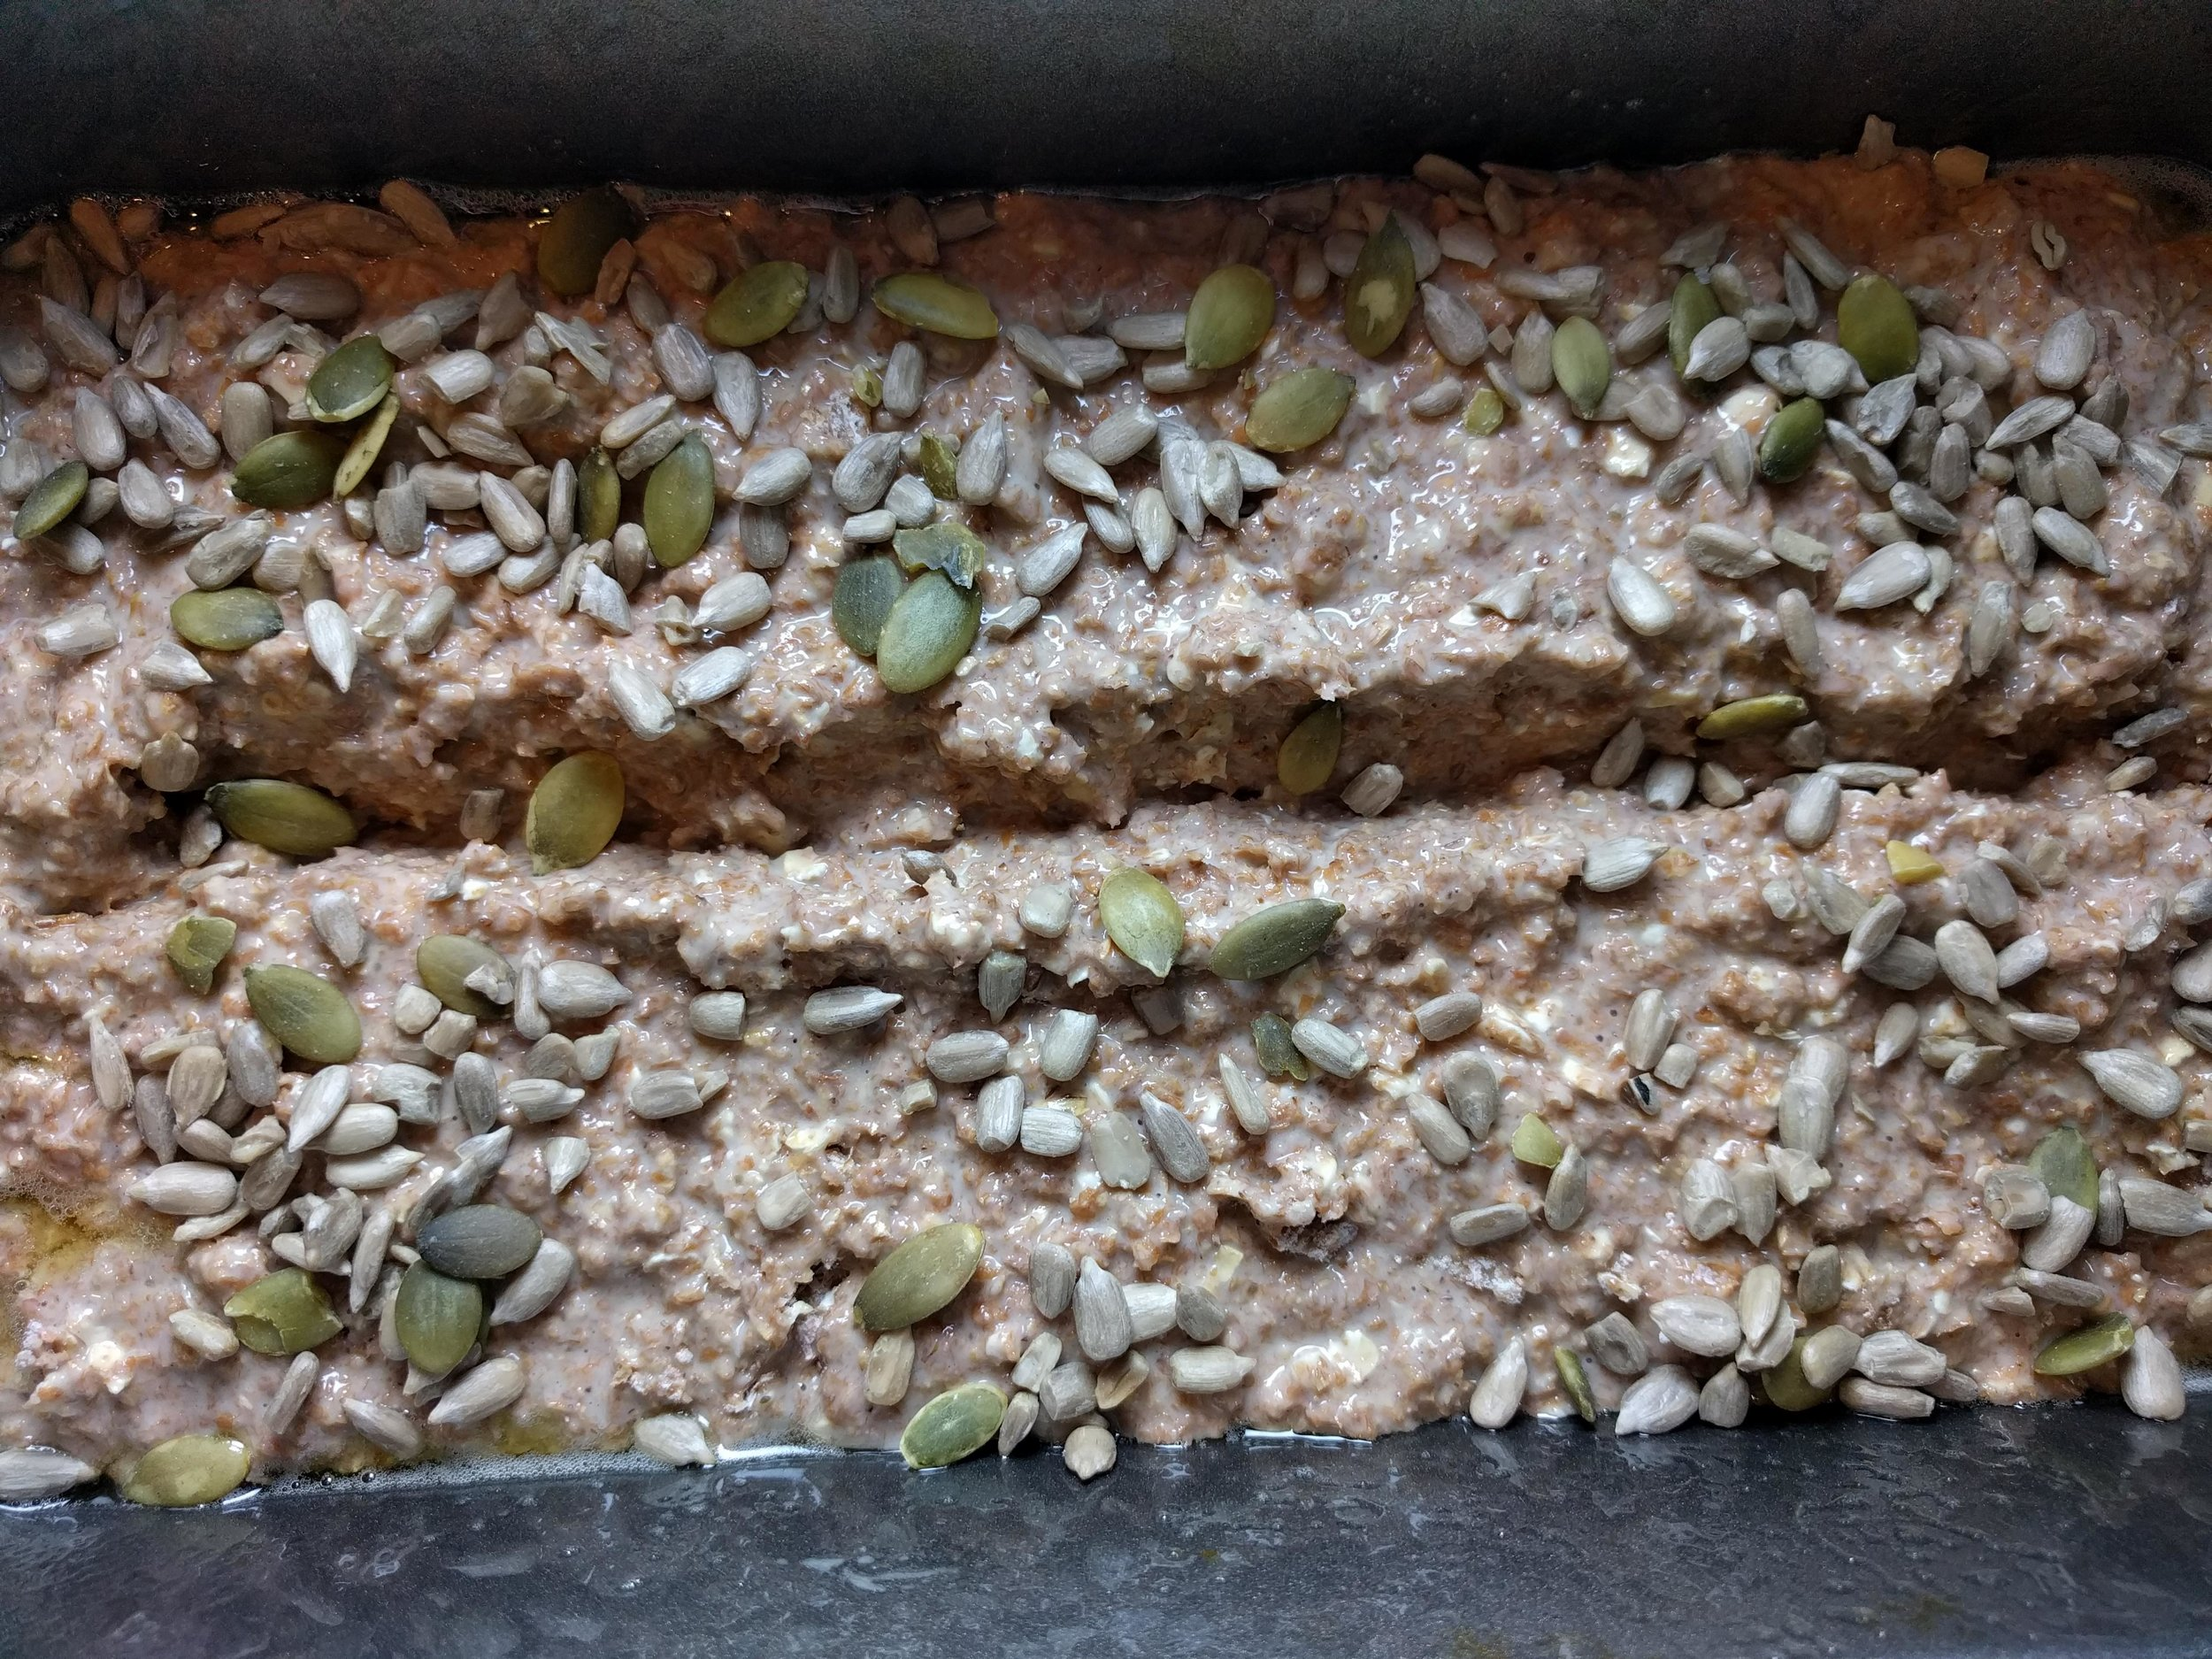 and the crunchy seed topping. Then your work is done. Put it in the oven.